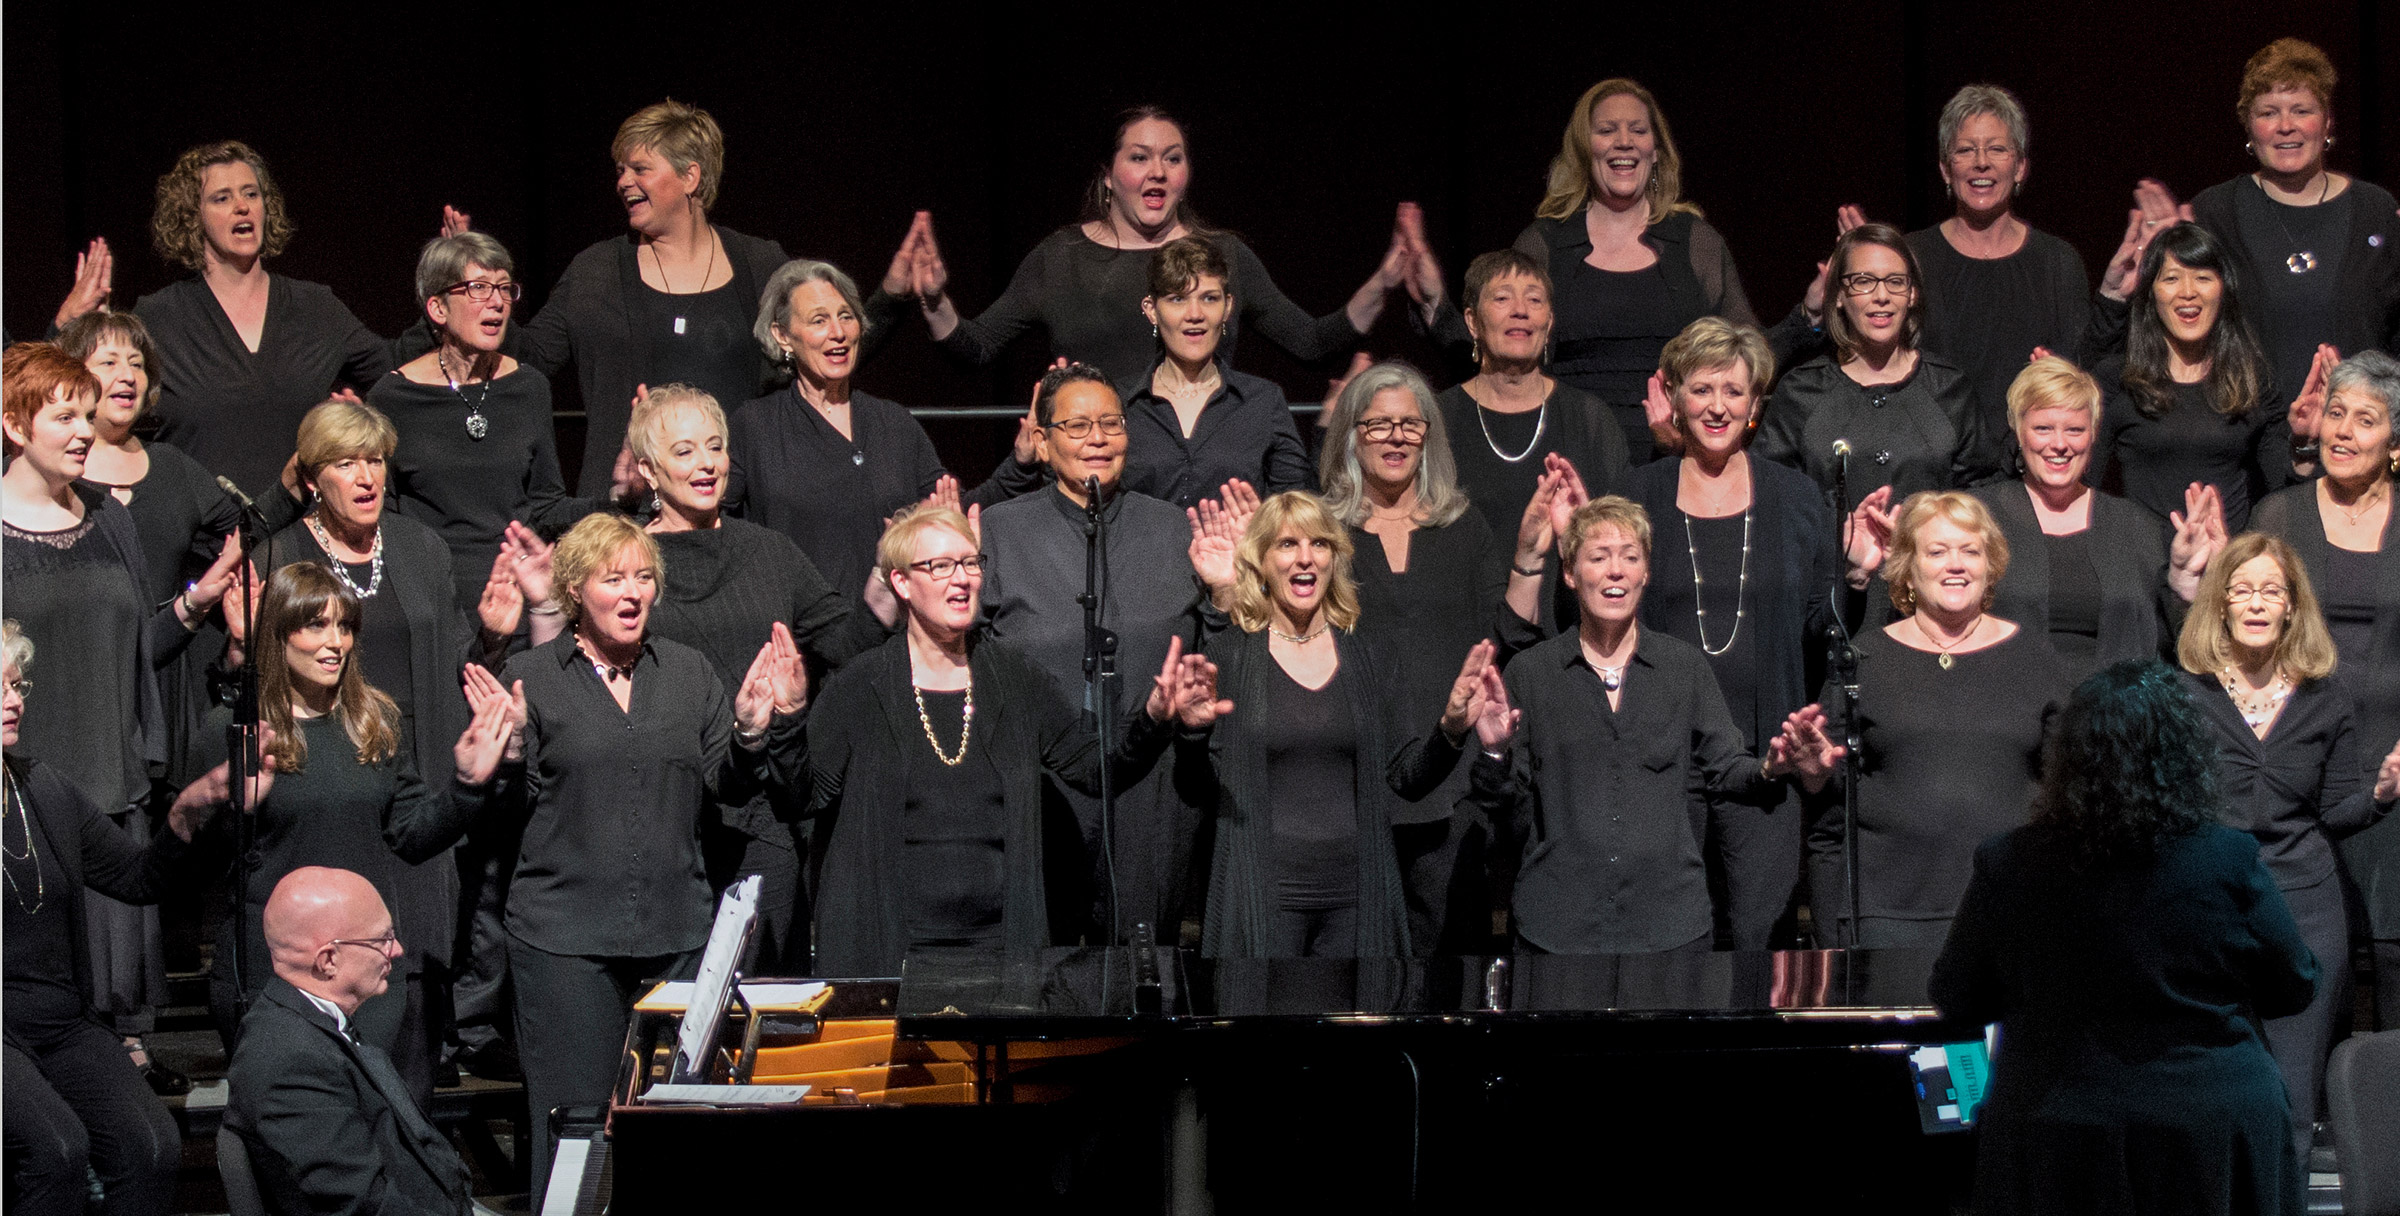 Grand Rapids Women's Chorus giving a performance